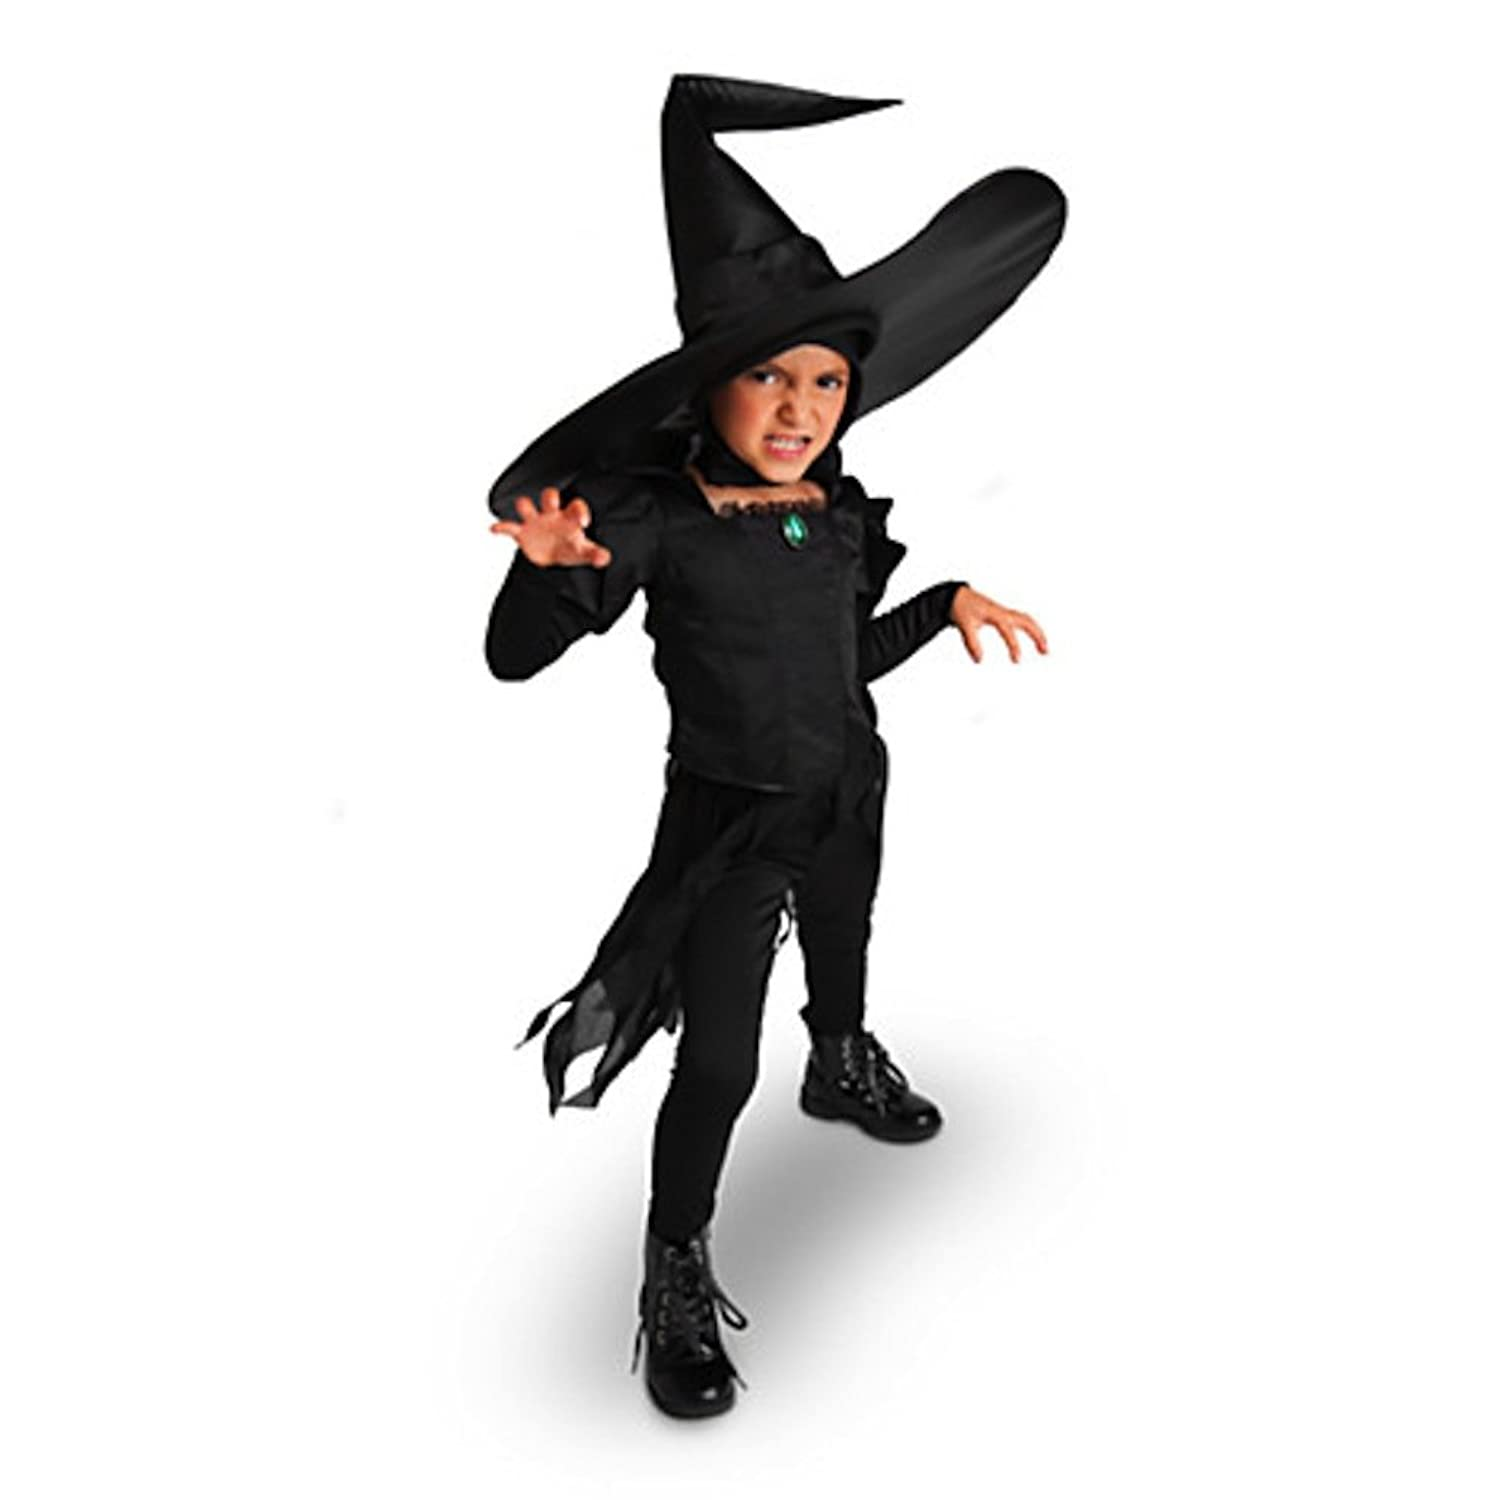 Amazon.com: Disney Store Deluxe Wicked Witch of the West Costume ...